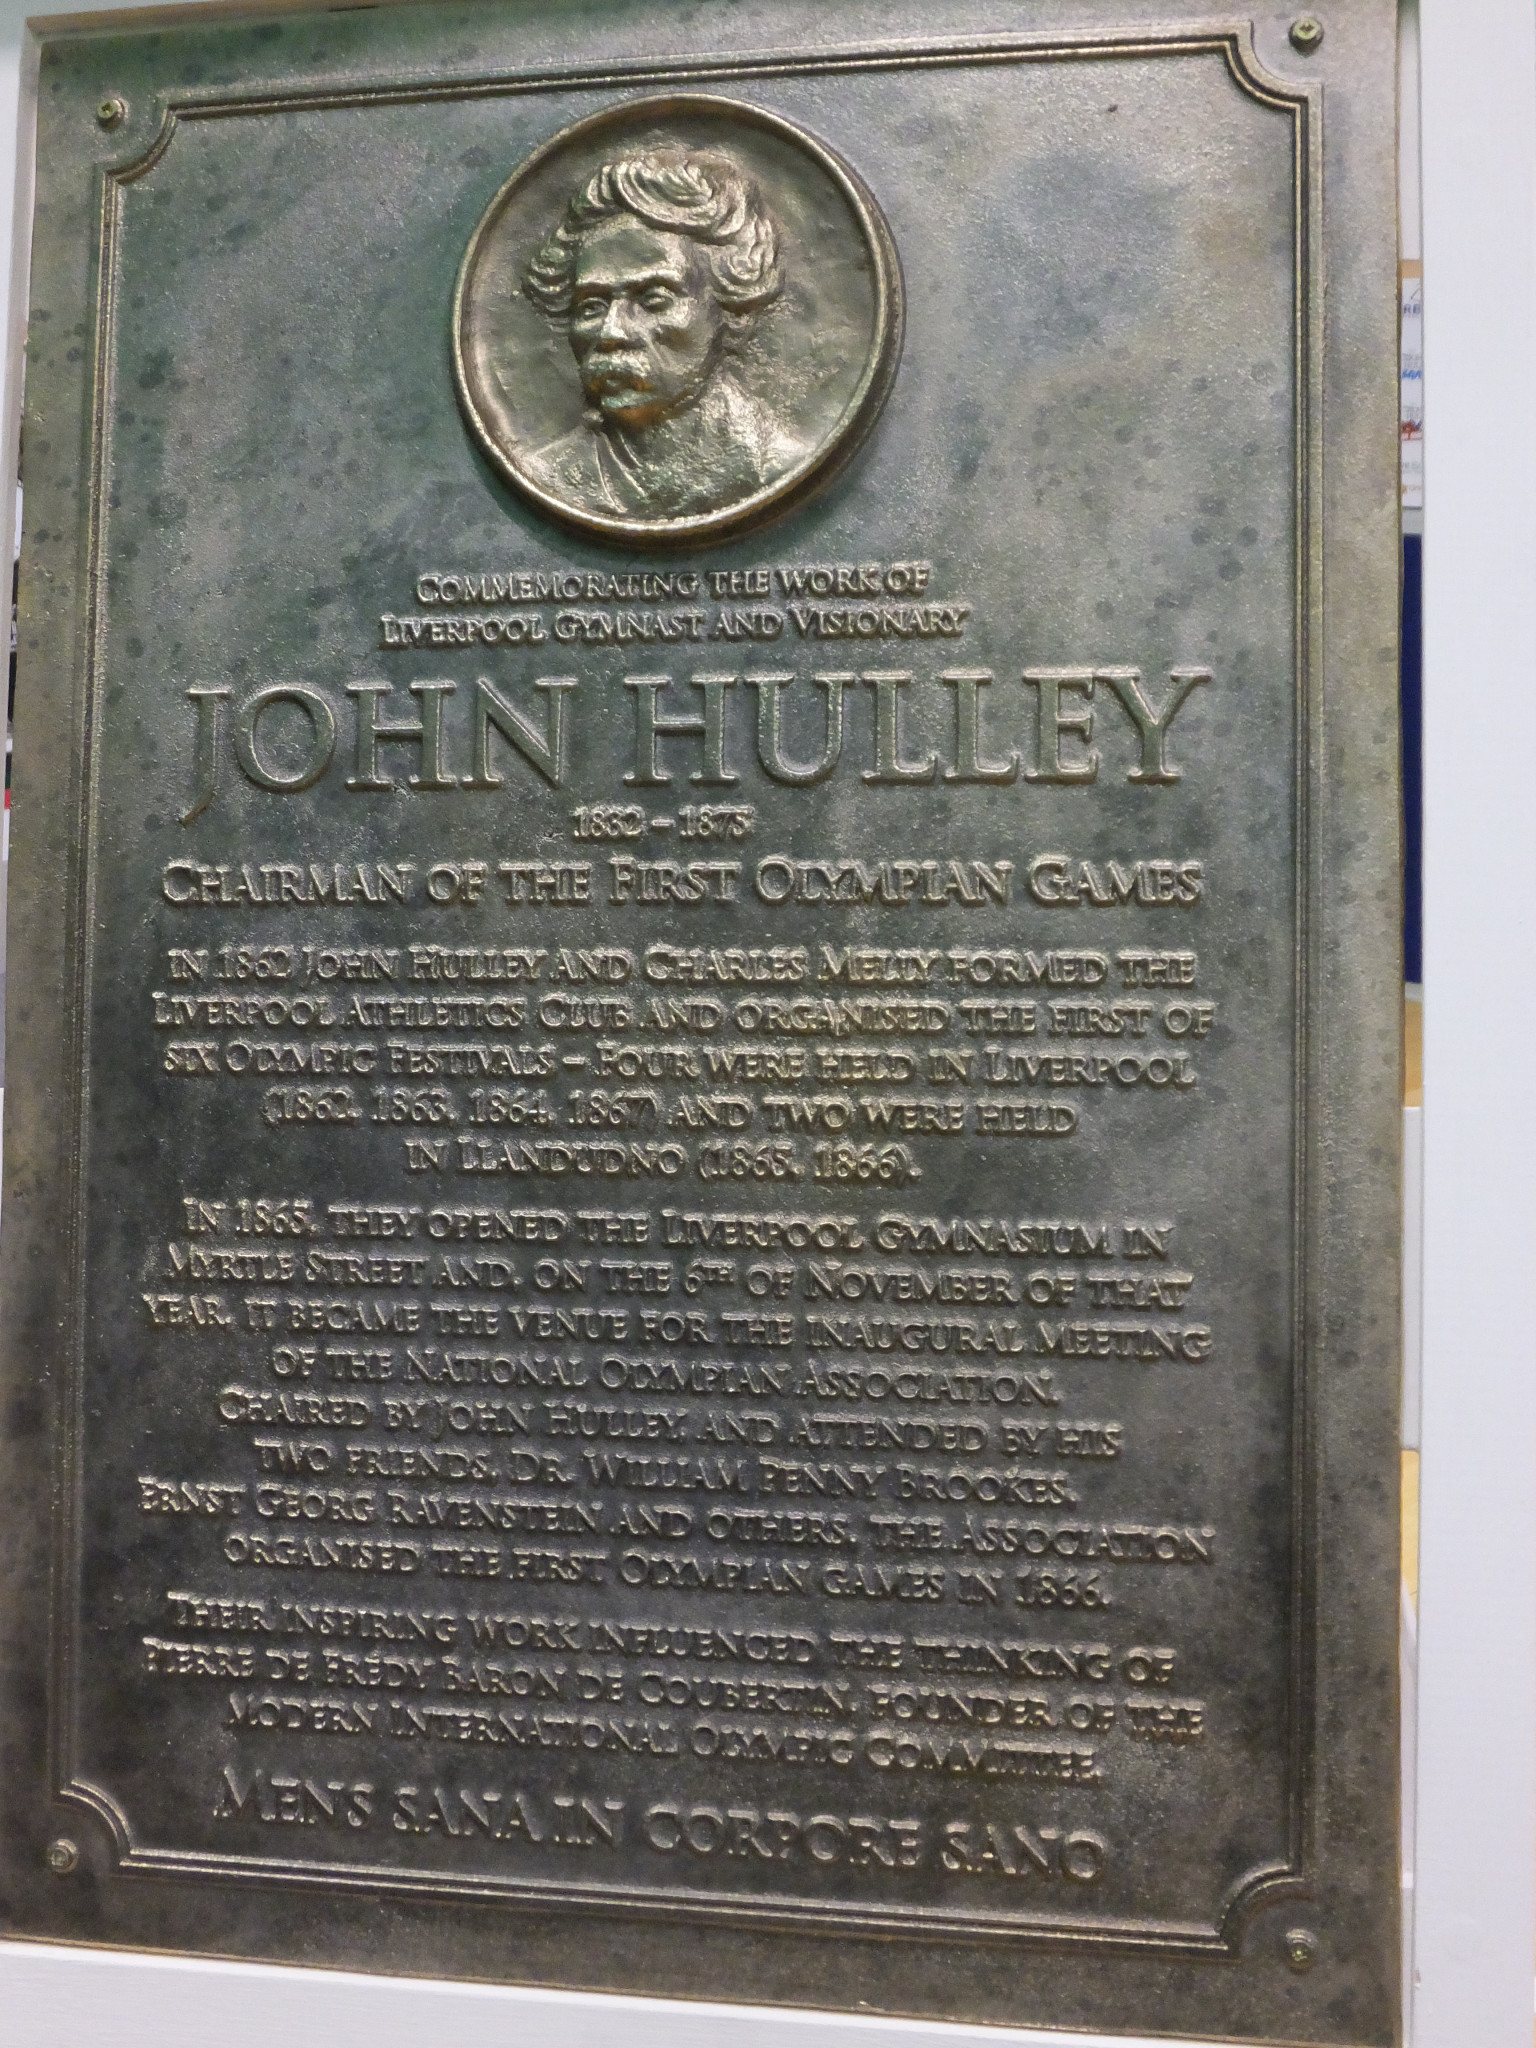 The grave of John Hulley in Toxteth, Liverpool  ©Ray Hulley